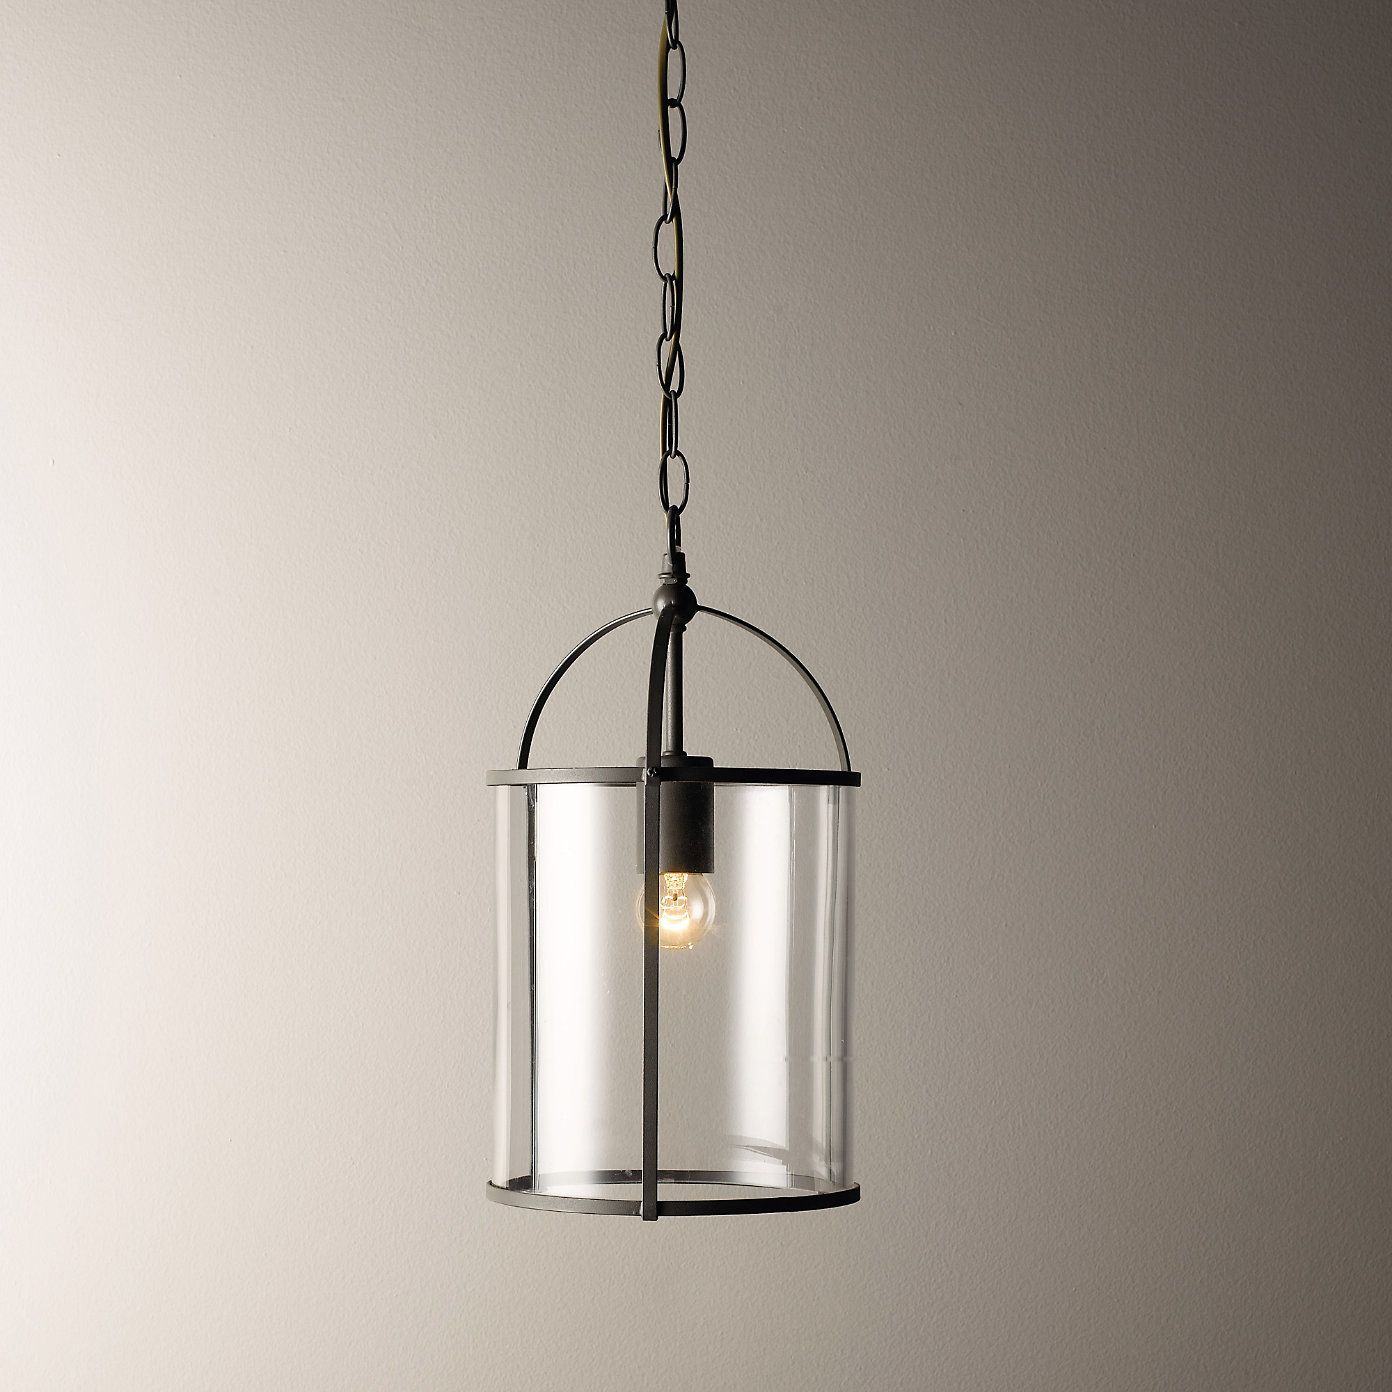 Lantern Ceiling Light